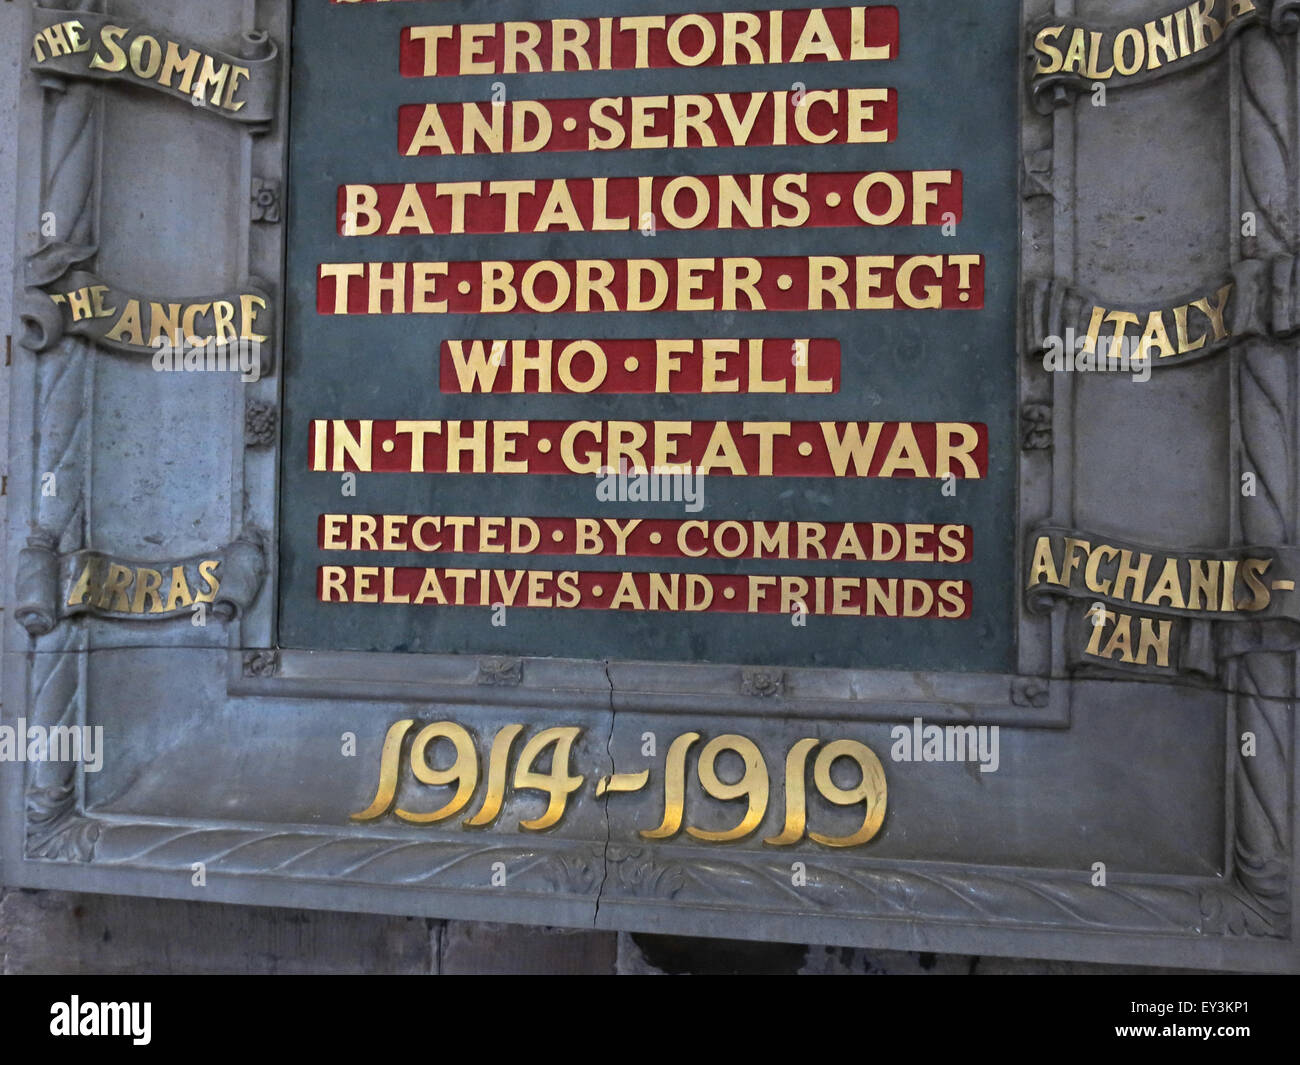 Cumbria,England,UK,Territorial and service battalions of the Border Regt who fell,in the great war,Erected by Comrades,GoTonySmith,Buy Pictures of,Buy Images Of